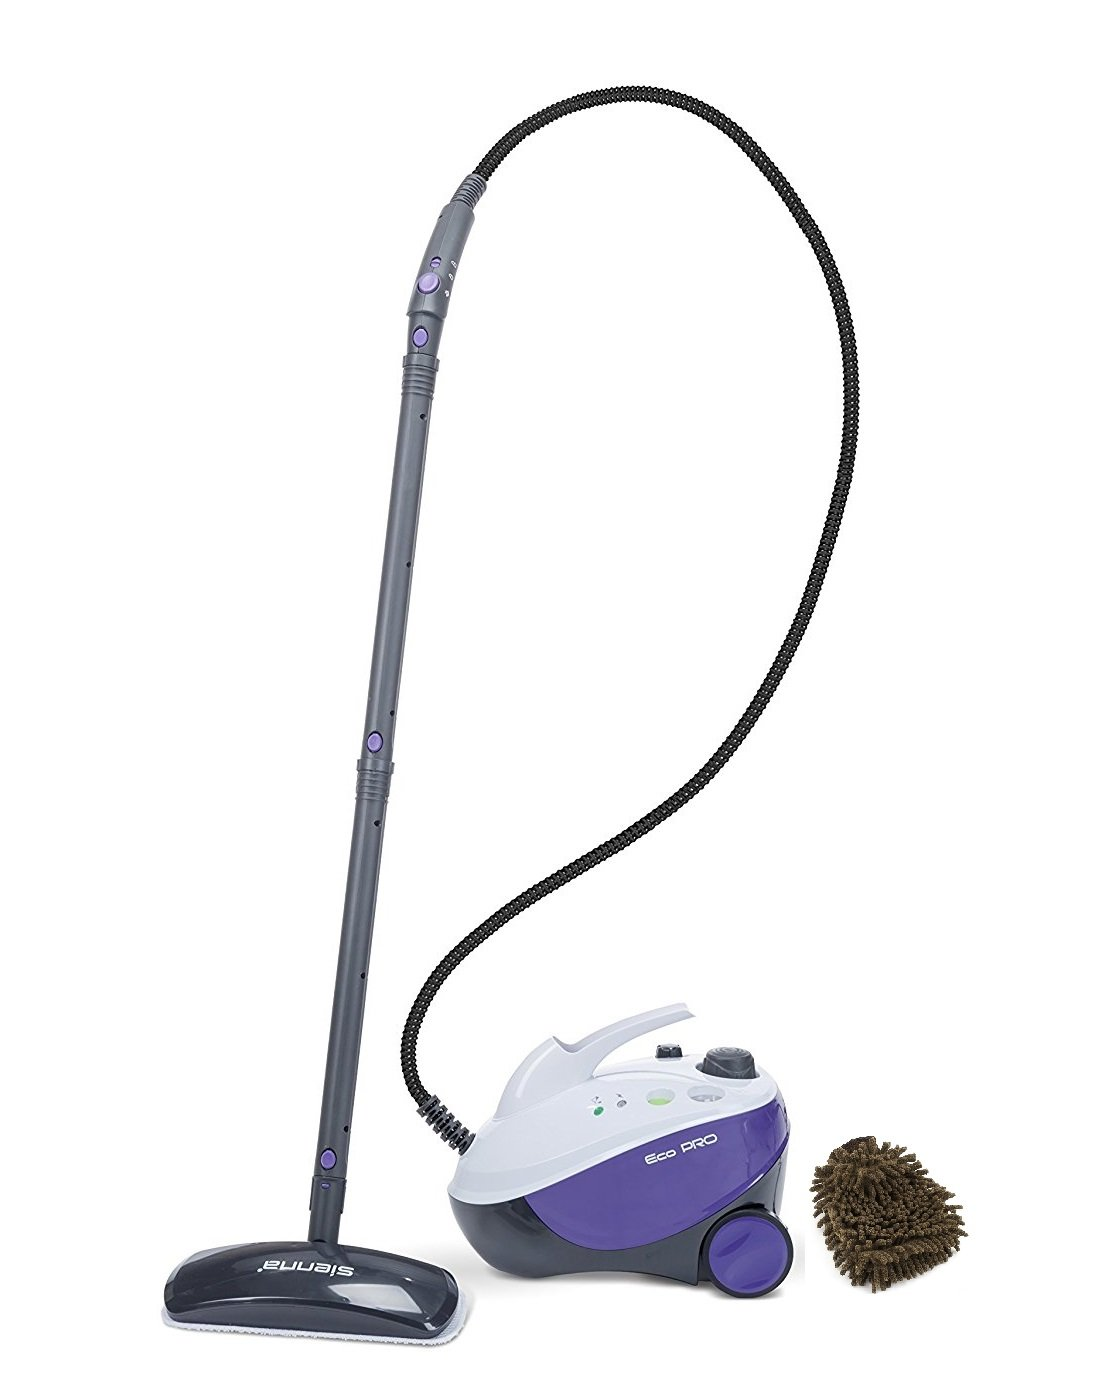 Sienna Eco Pro SSC-0412 Steam Cleaner, Multi Purpose (Complete Set) w/ Bonus: Premium Microfiber Cleaner Bundle